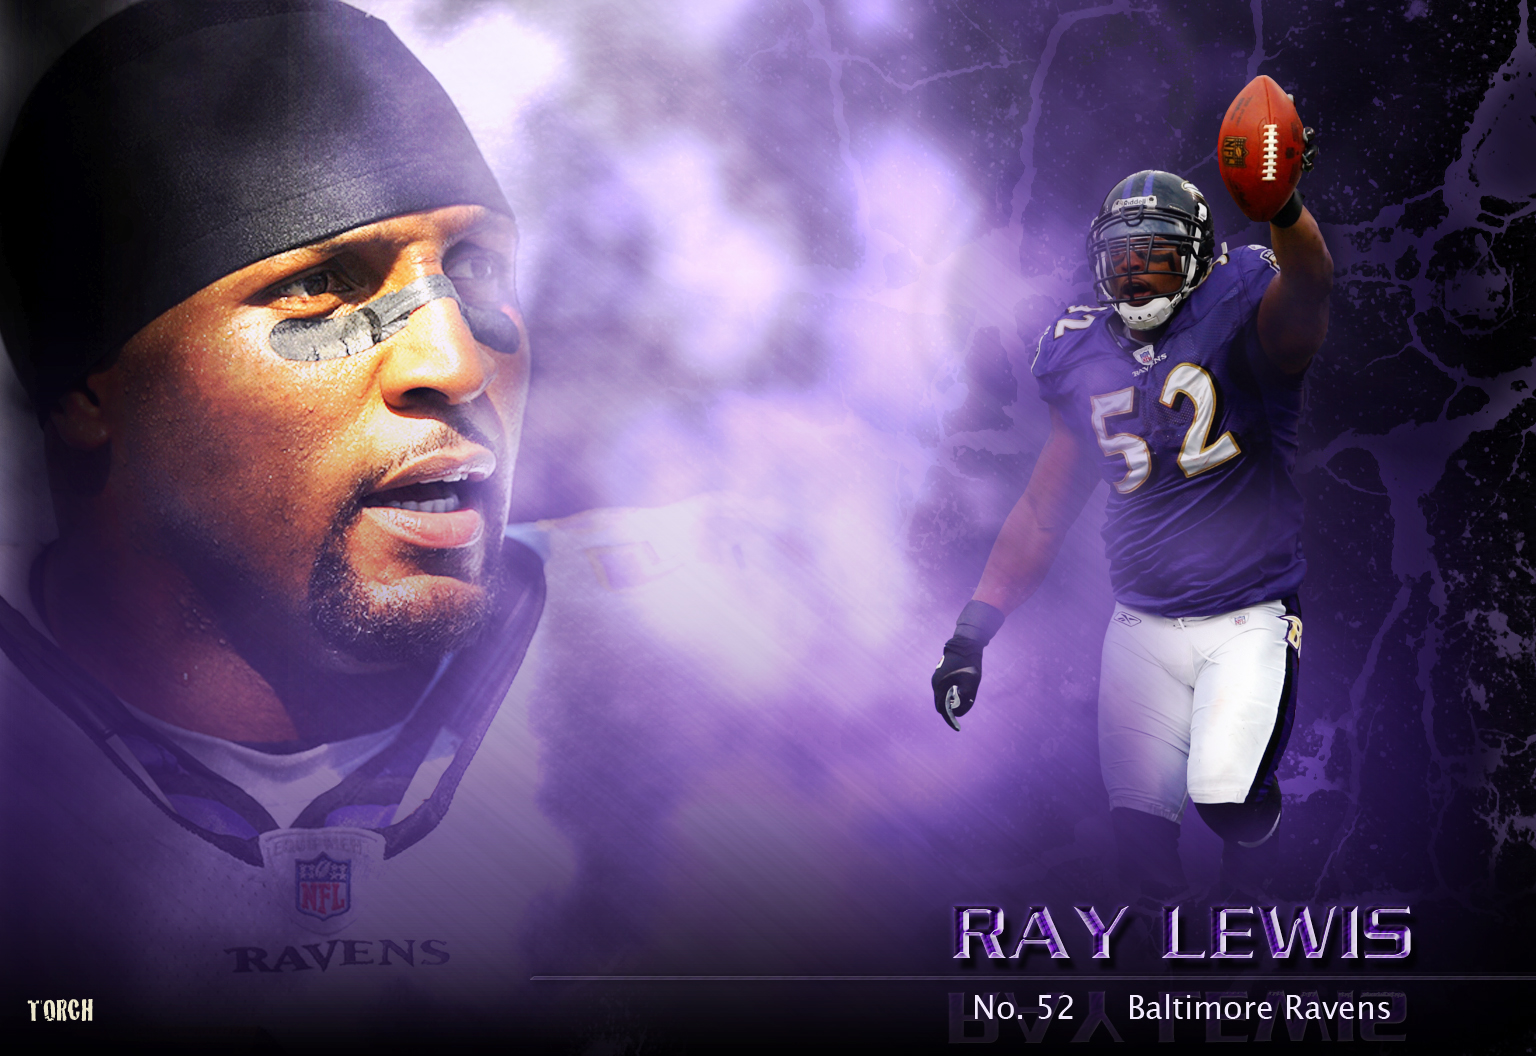 Baltimore Ravens wallpaper HD desktop wallpaper Baltimore Ravens 1536x1056